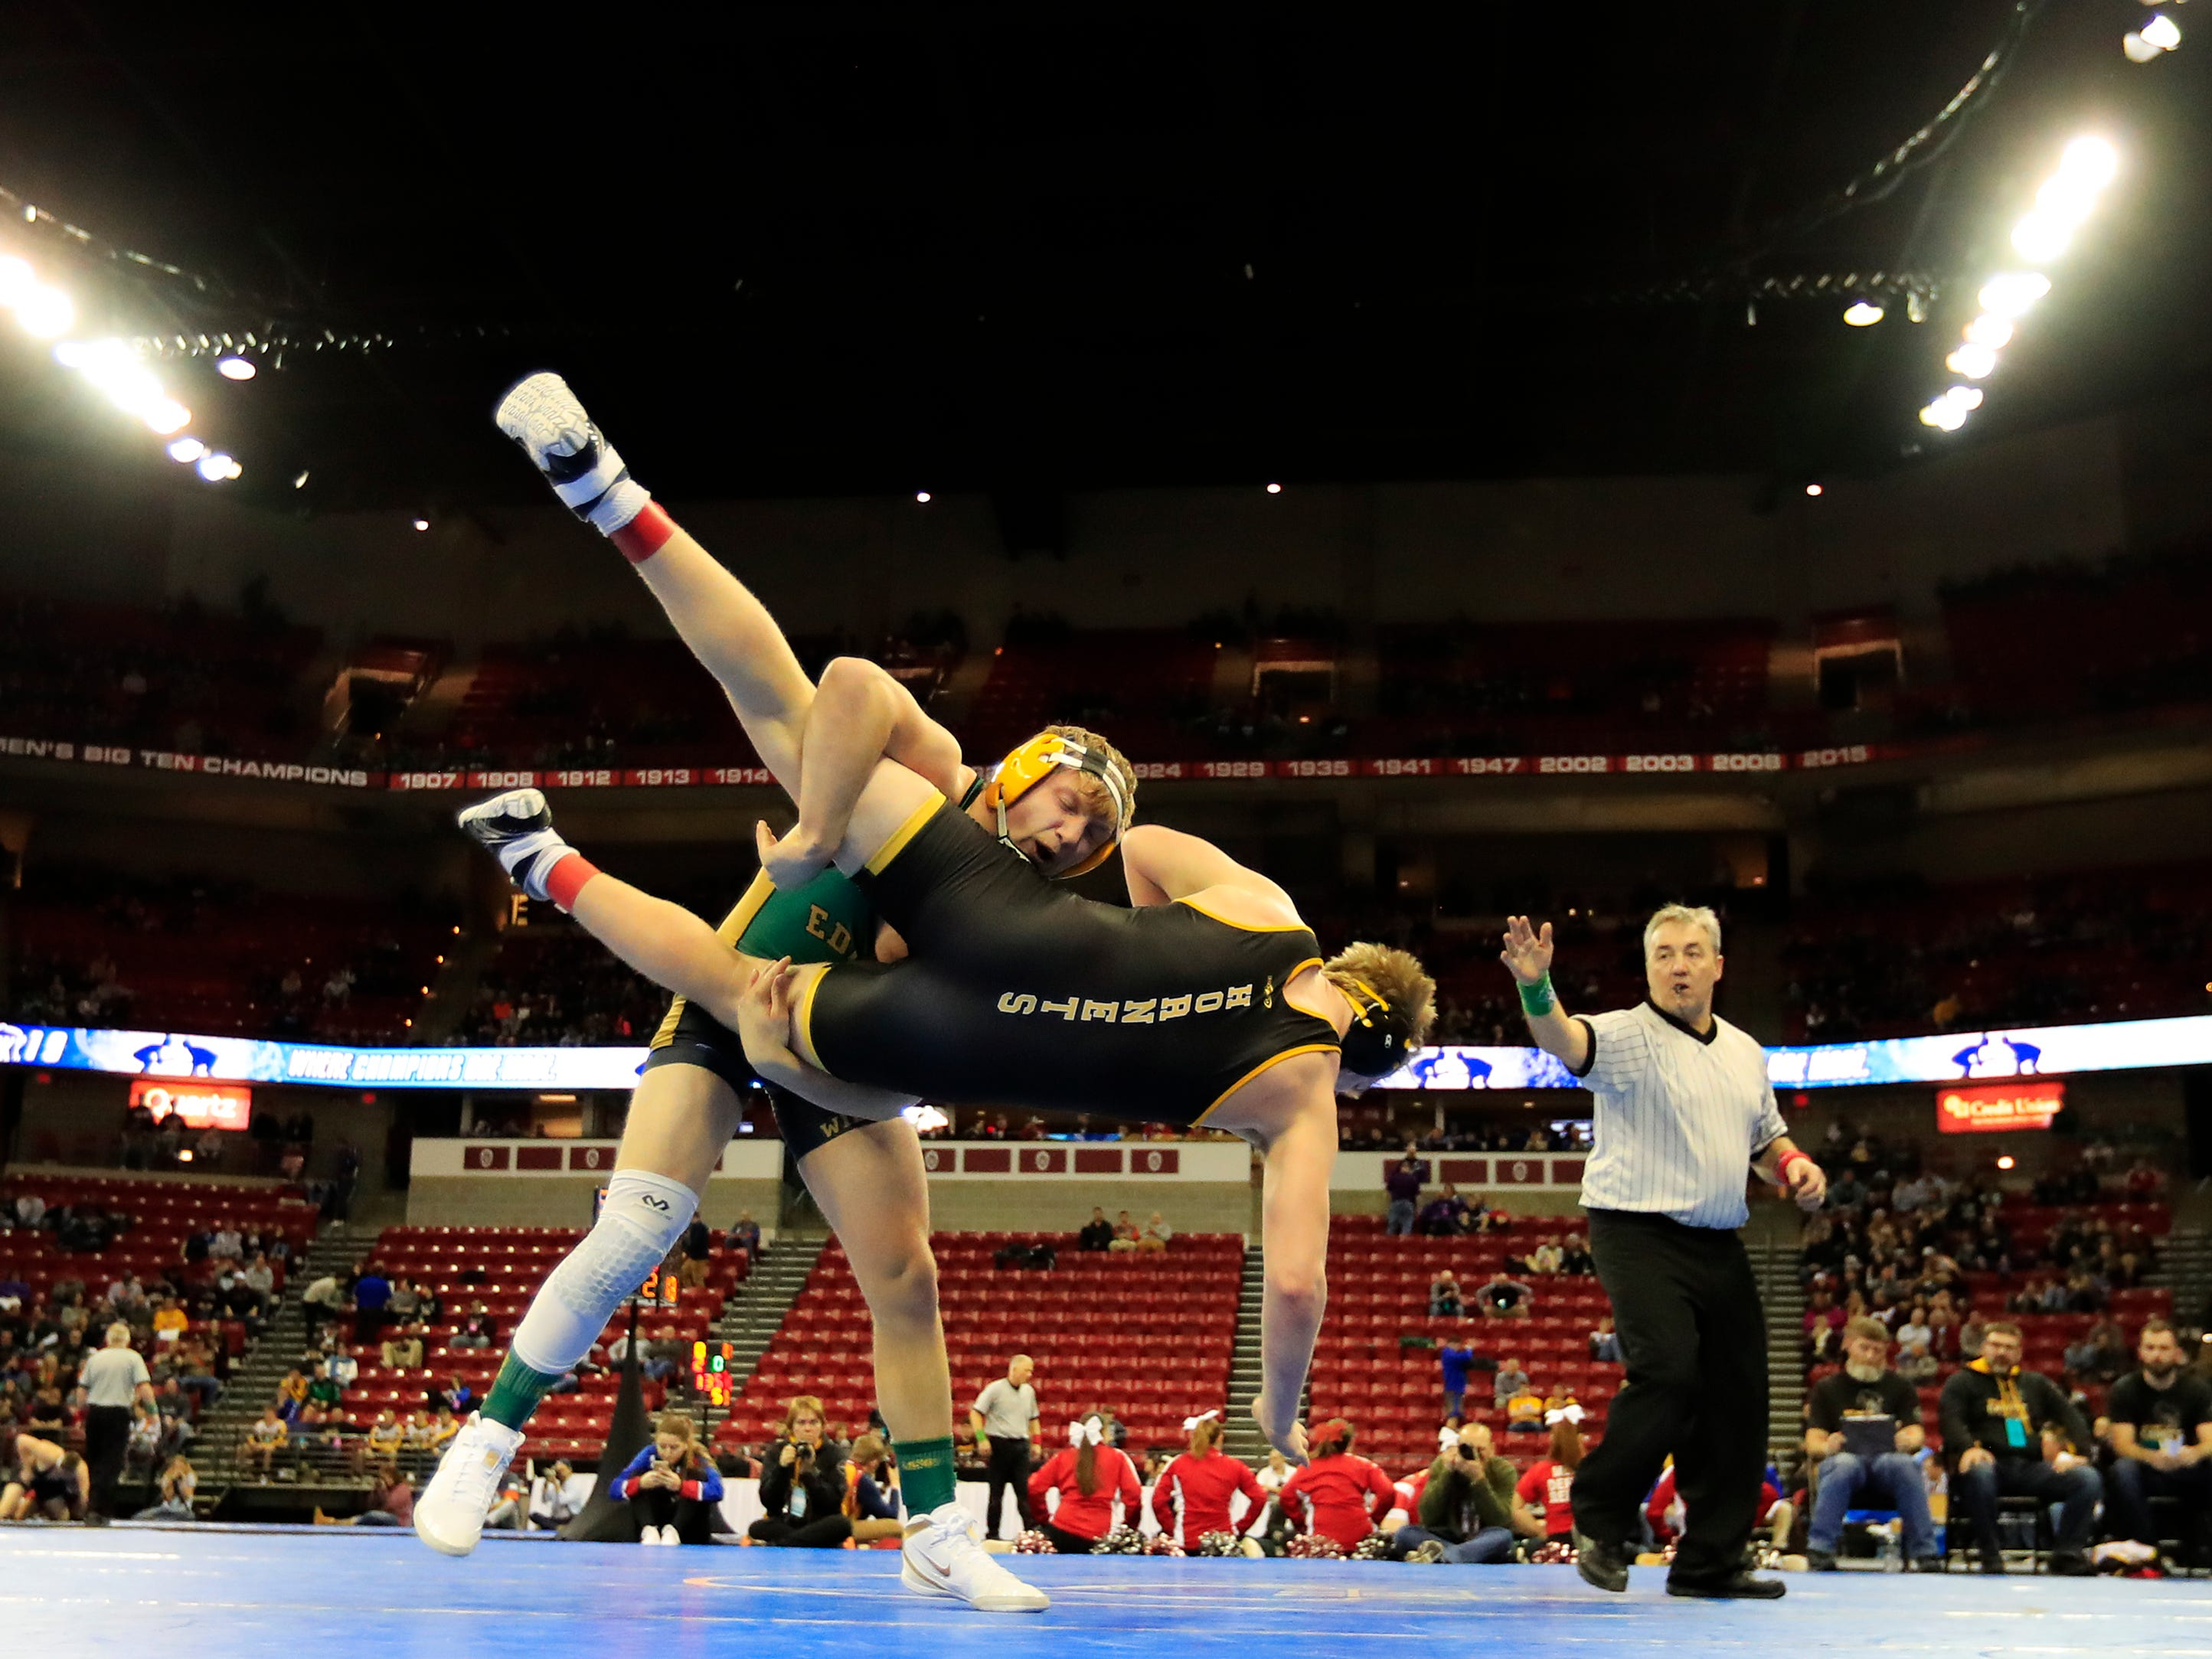 Edgar's William Raatz gets a takedown in a Division 3 195-pound preliminary match at the WIAA state individual wrestling tournament at the Kohl Center on Thursday, February 21, 2019 in Madison, Wis.